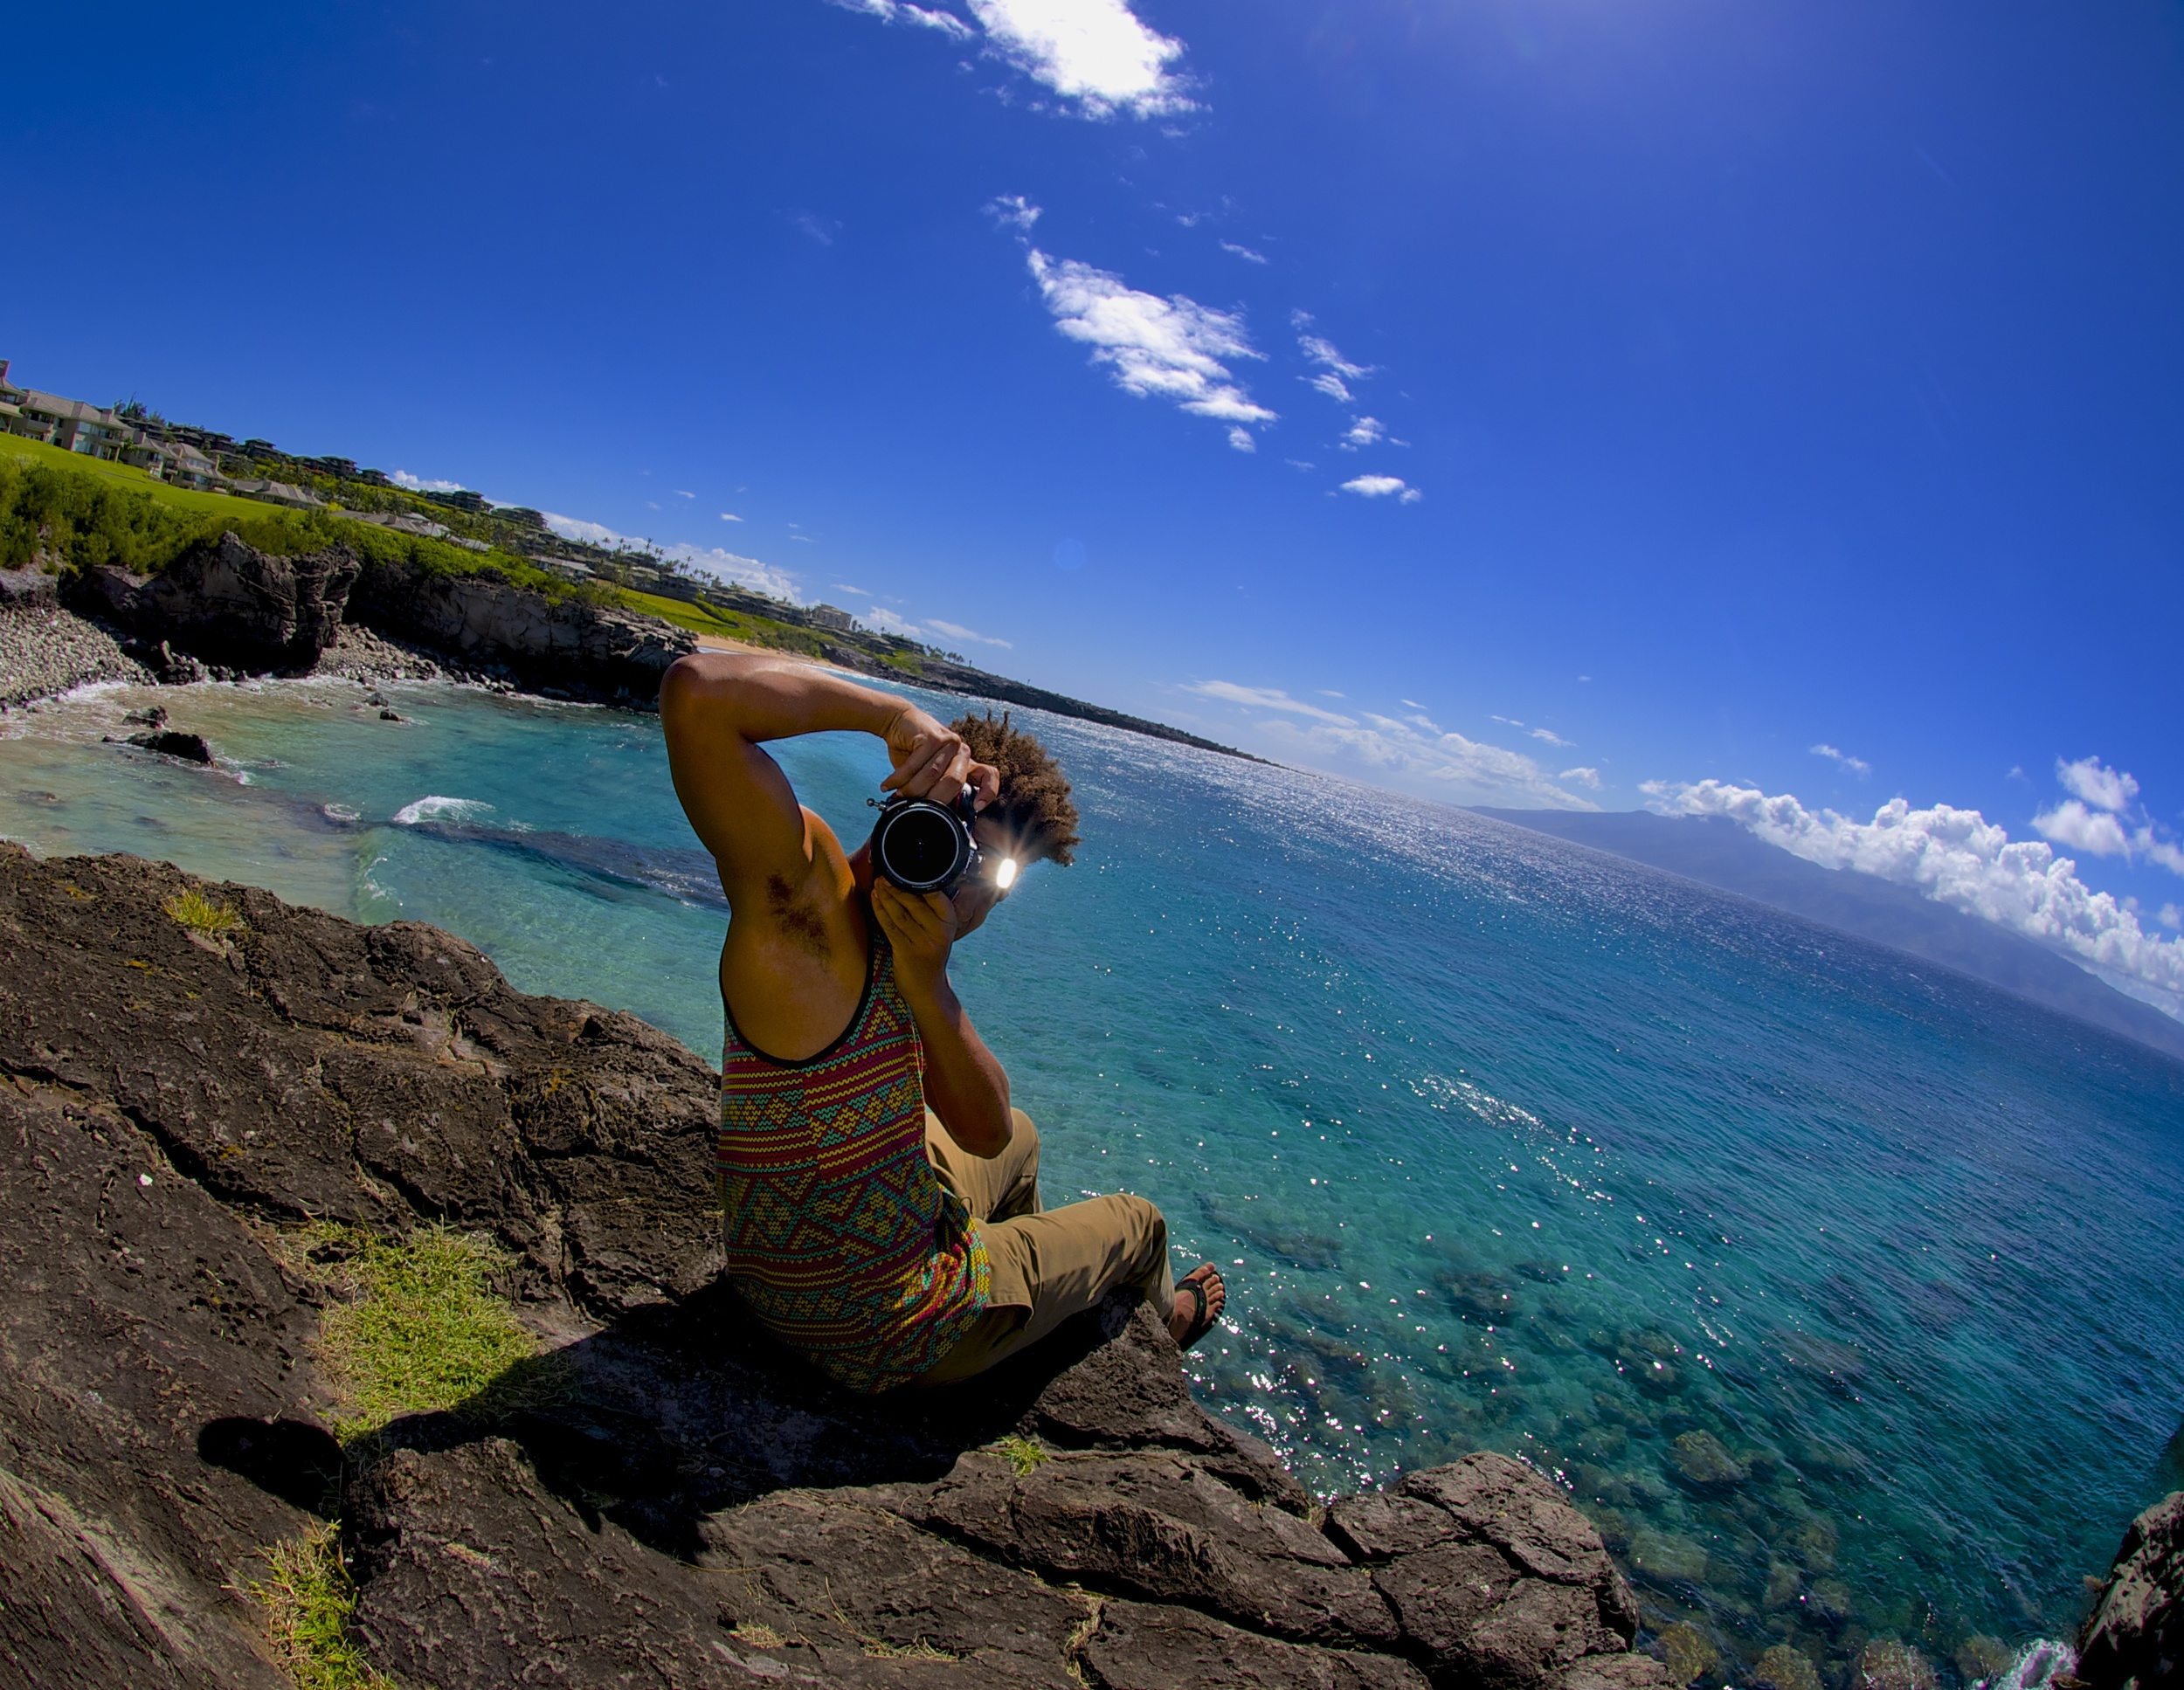 Out shooting in Ka'anapali, Maui